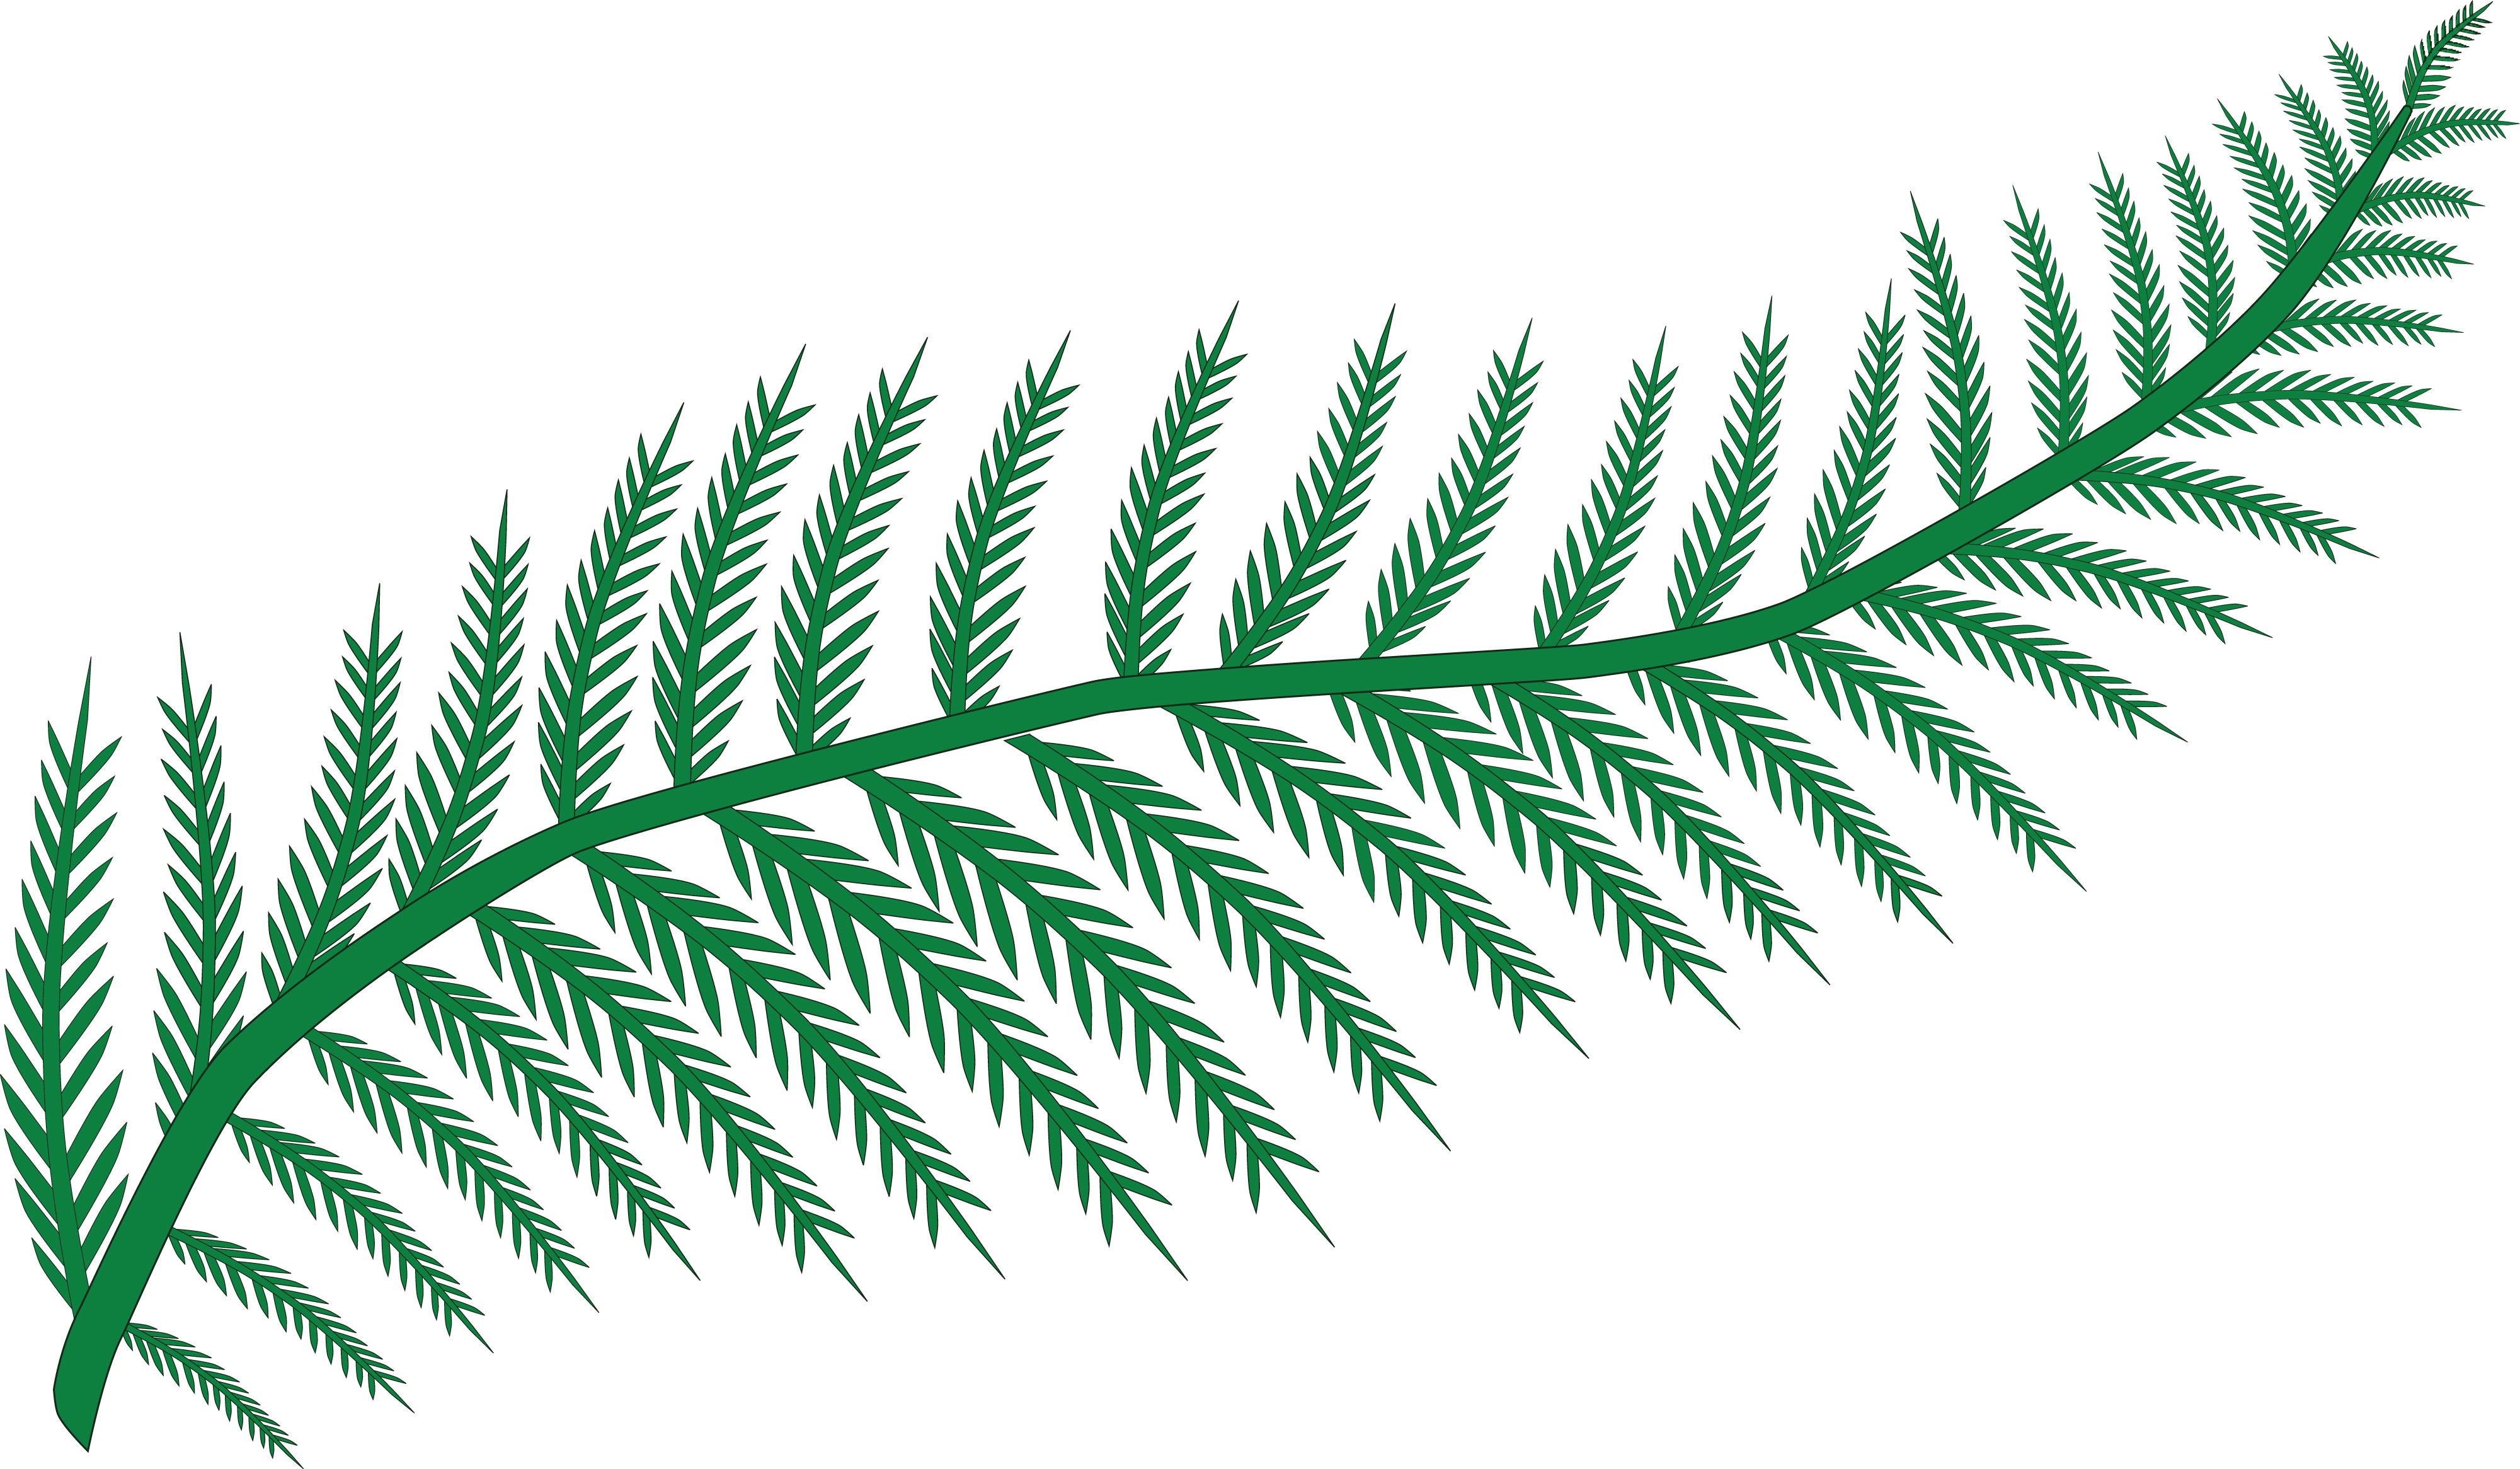 Fern svg #9, Download drawings